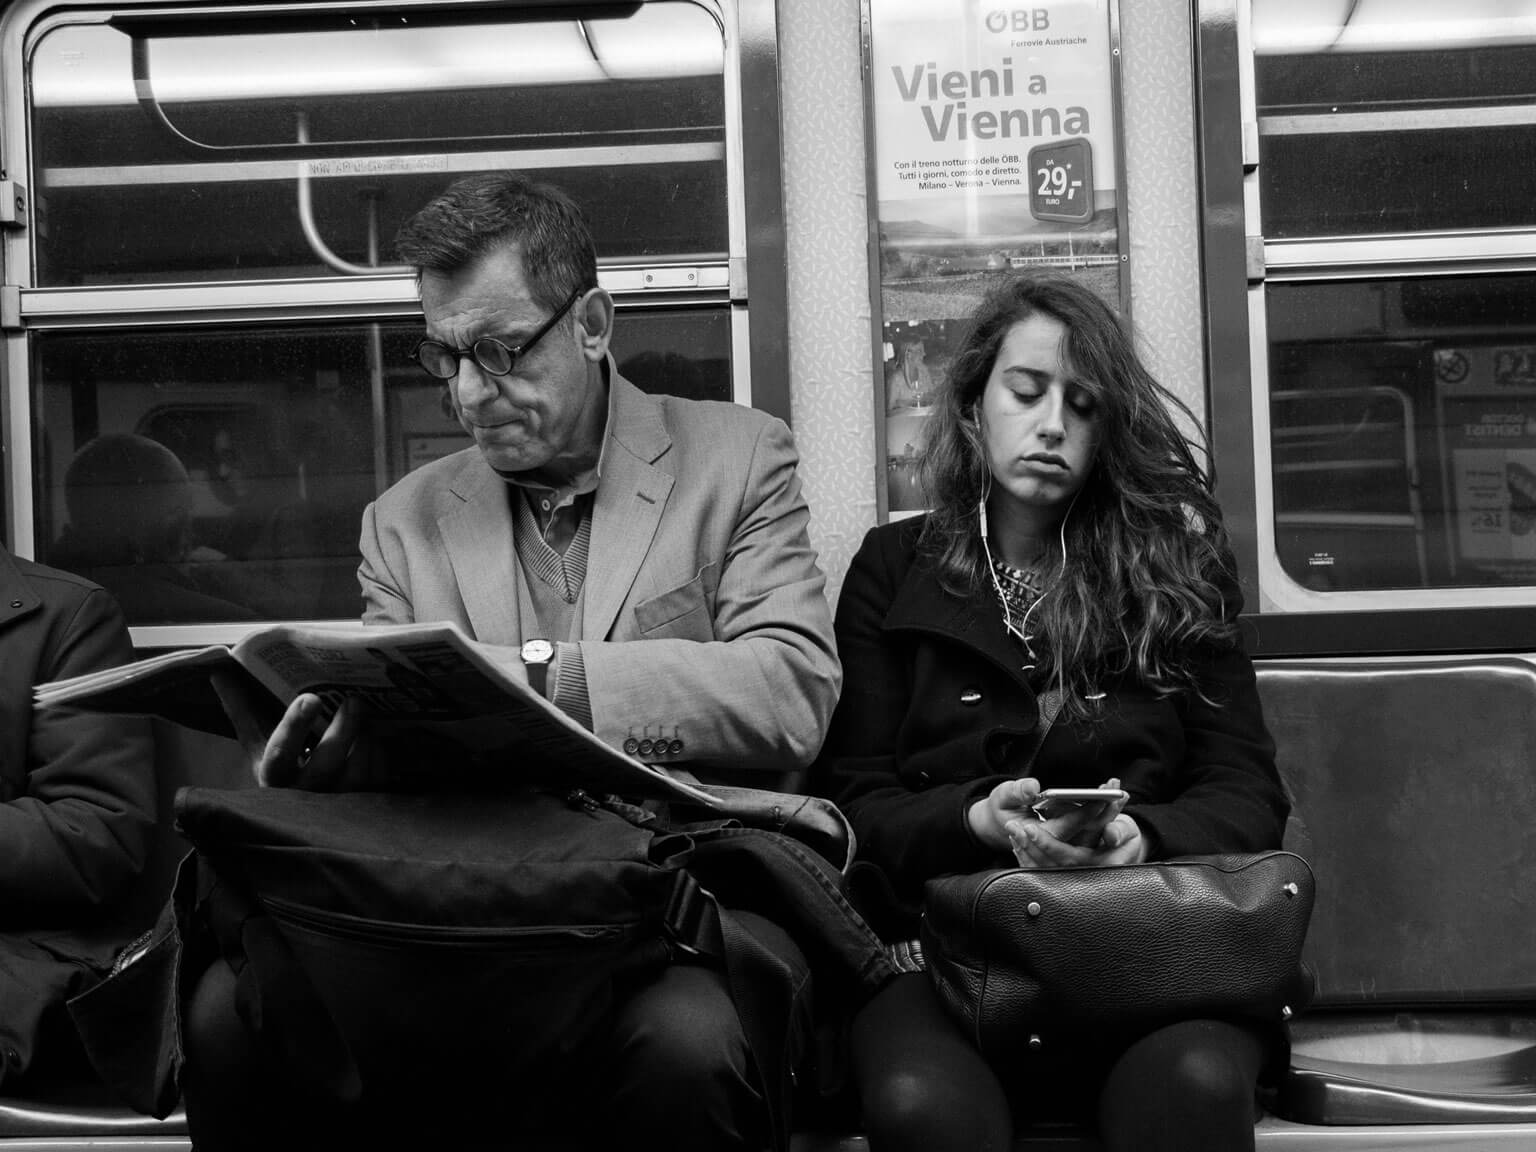 An older man reads a newspaper while a younger woman reads on a smartphone